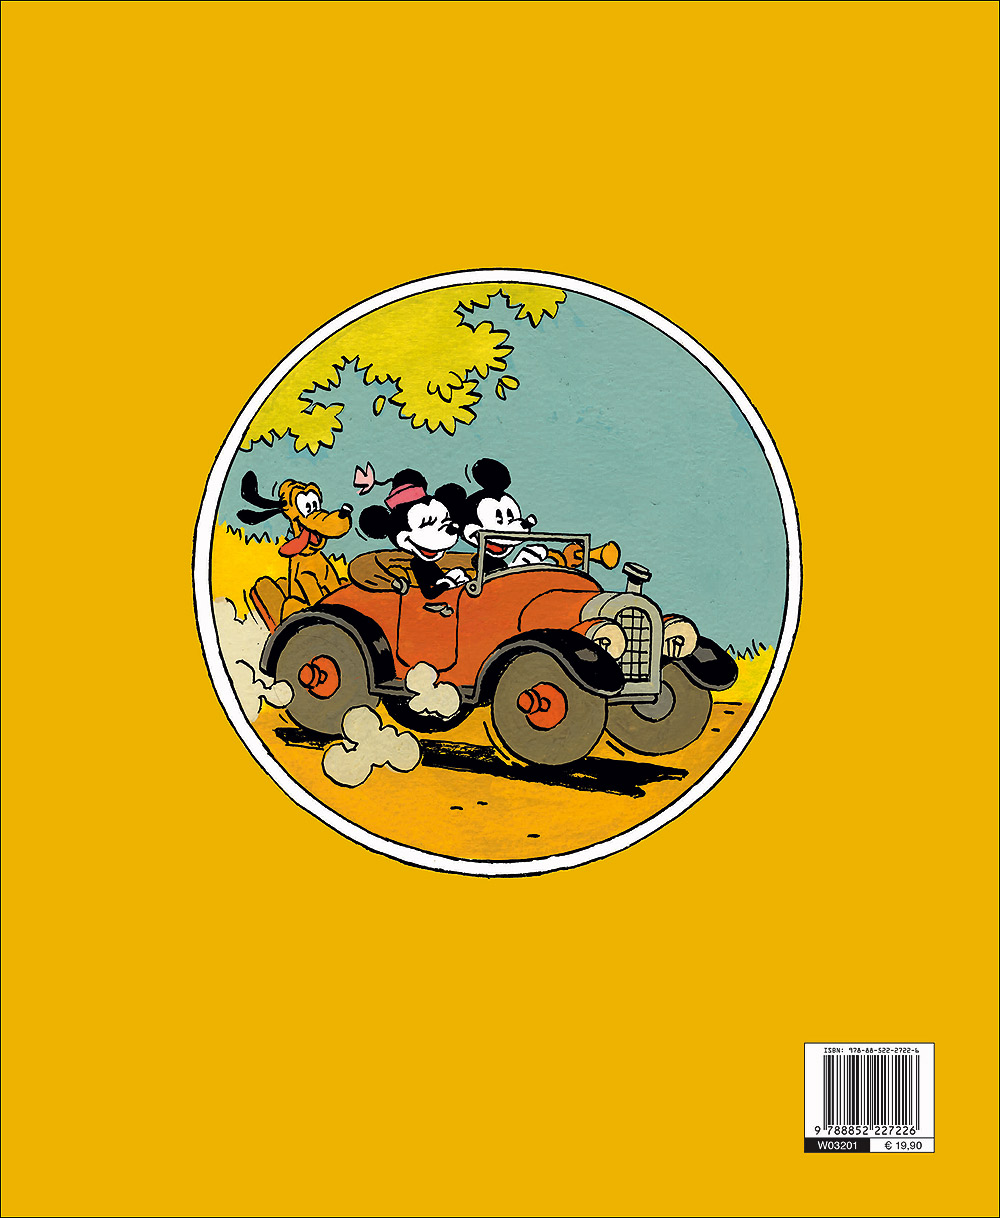 Disney Comic Collection - Una misteriosa melodia